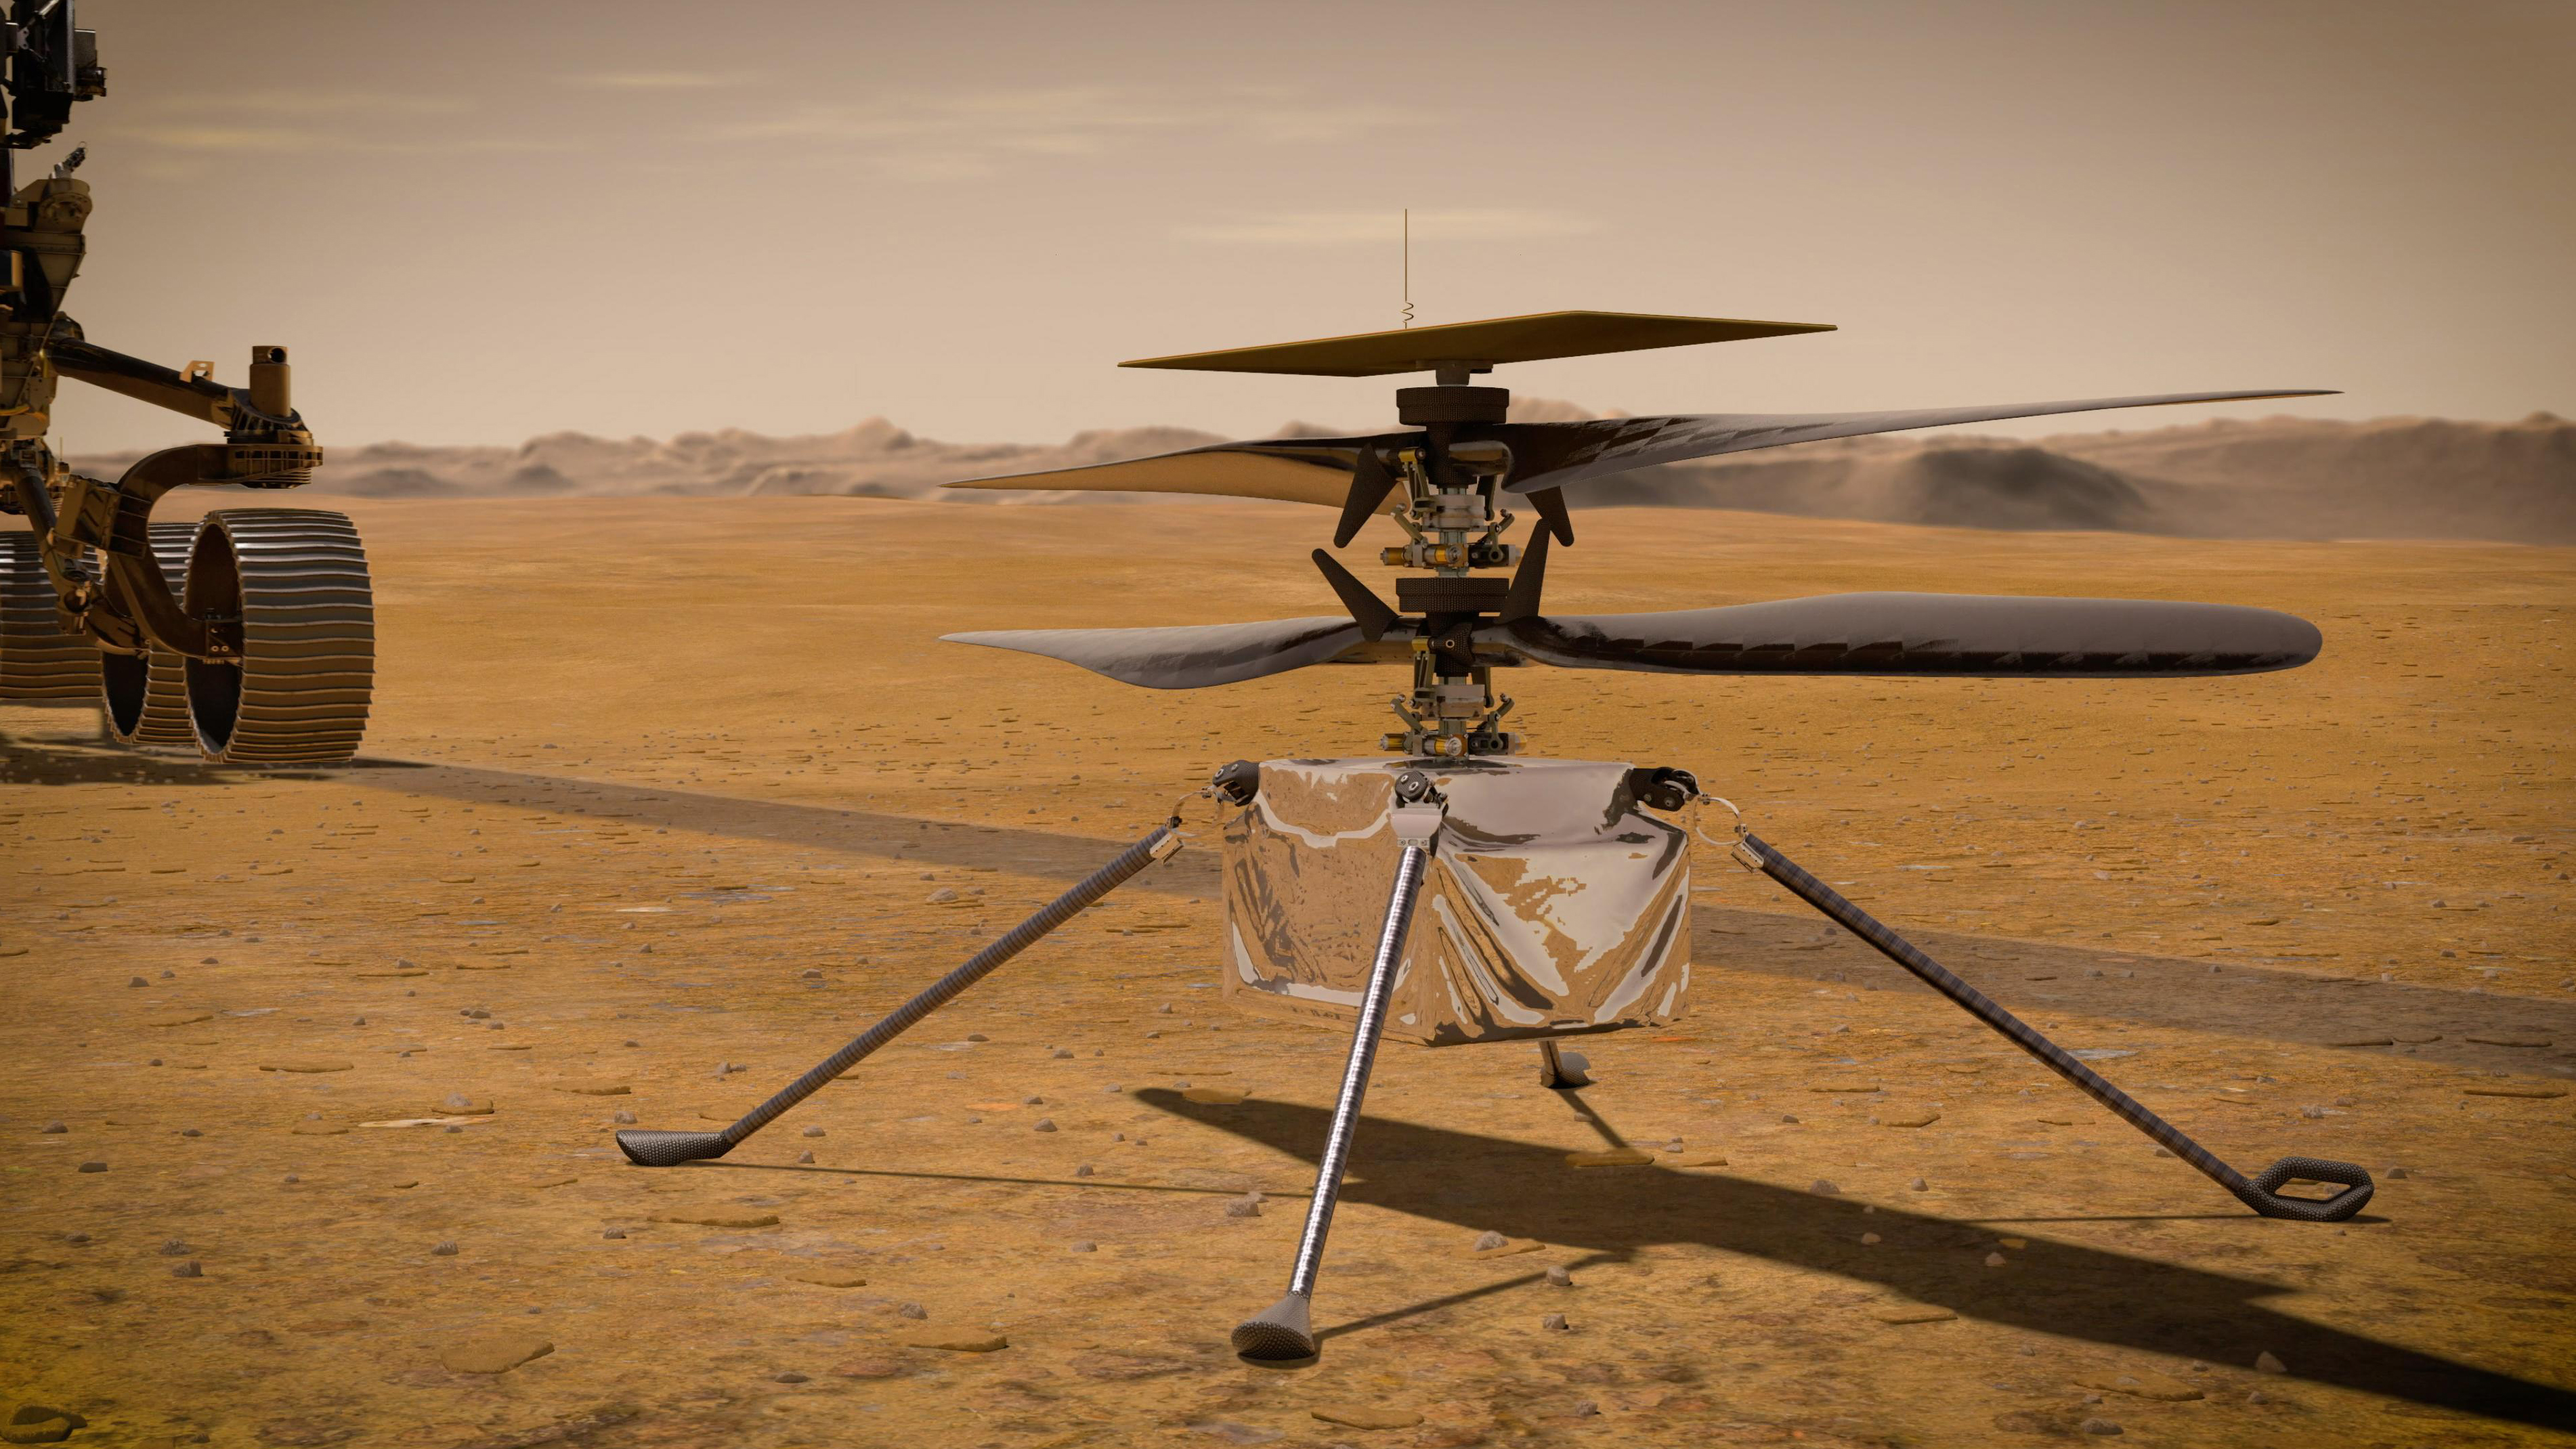 Ingenuity Mars helicopter: The historic journey to fly on another planet